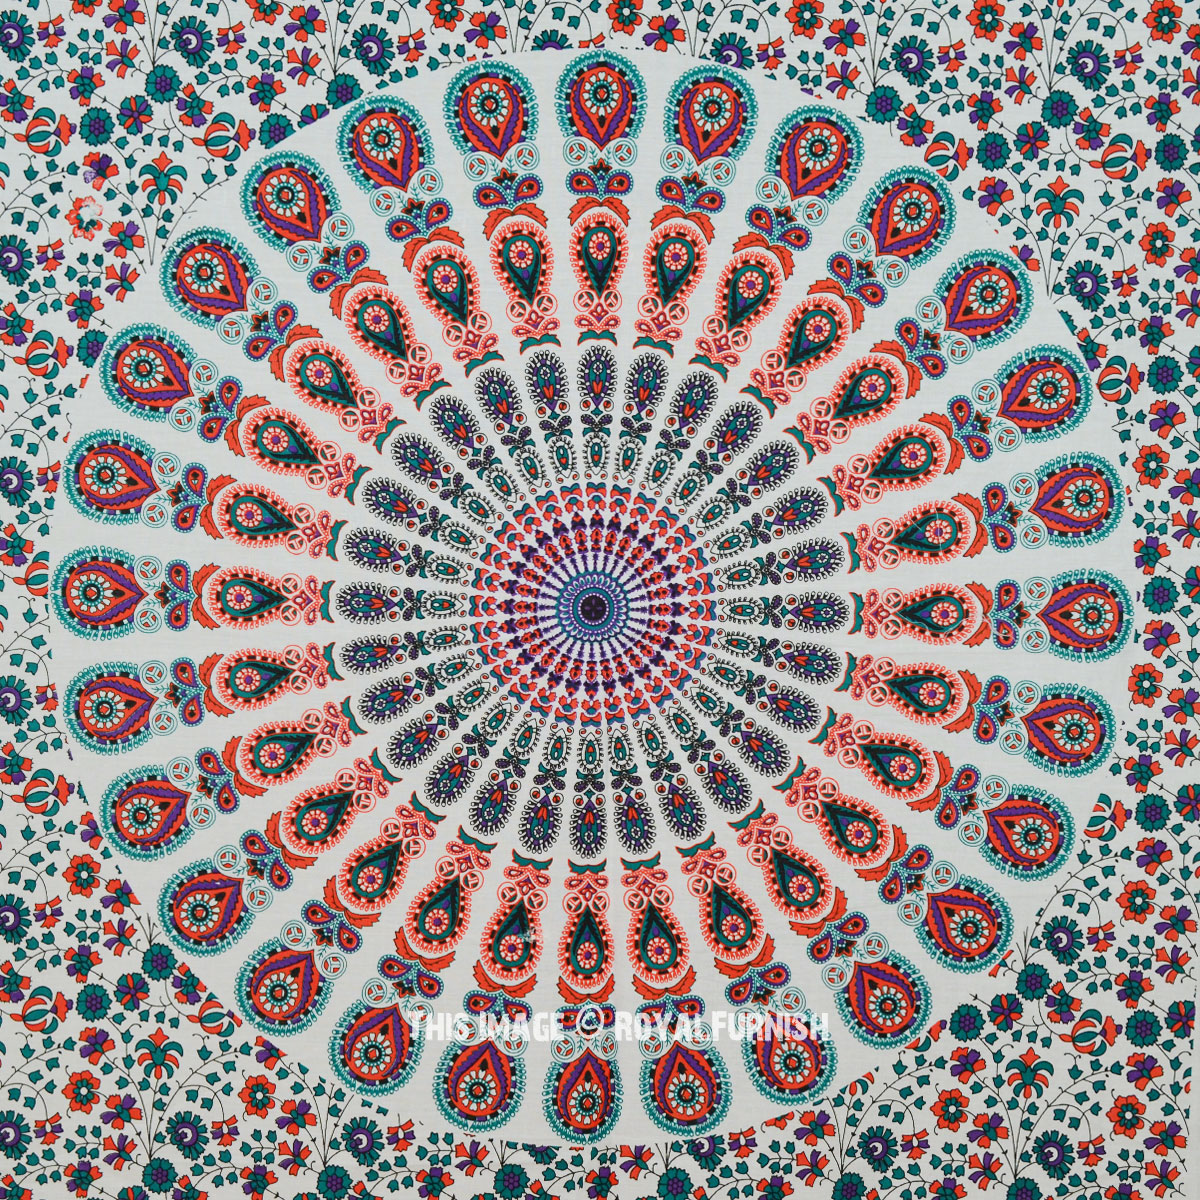 White Orange Multi Mandala Poster Tapestry Royalfurnish Com